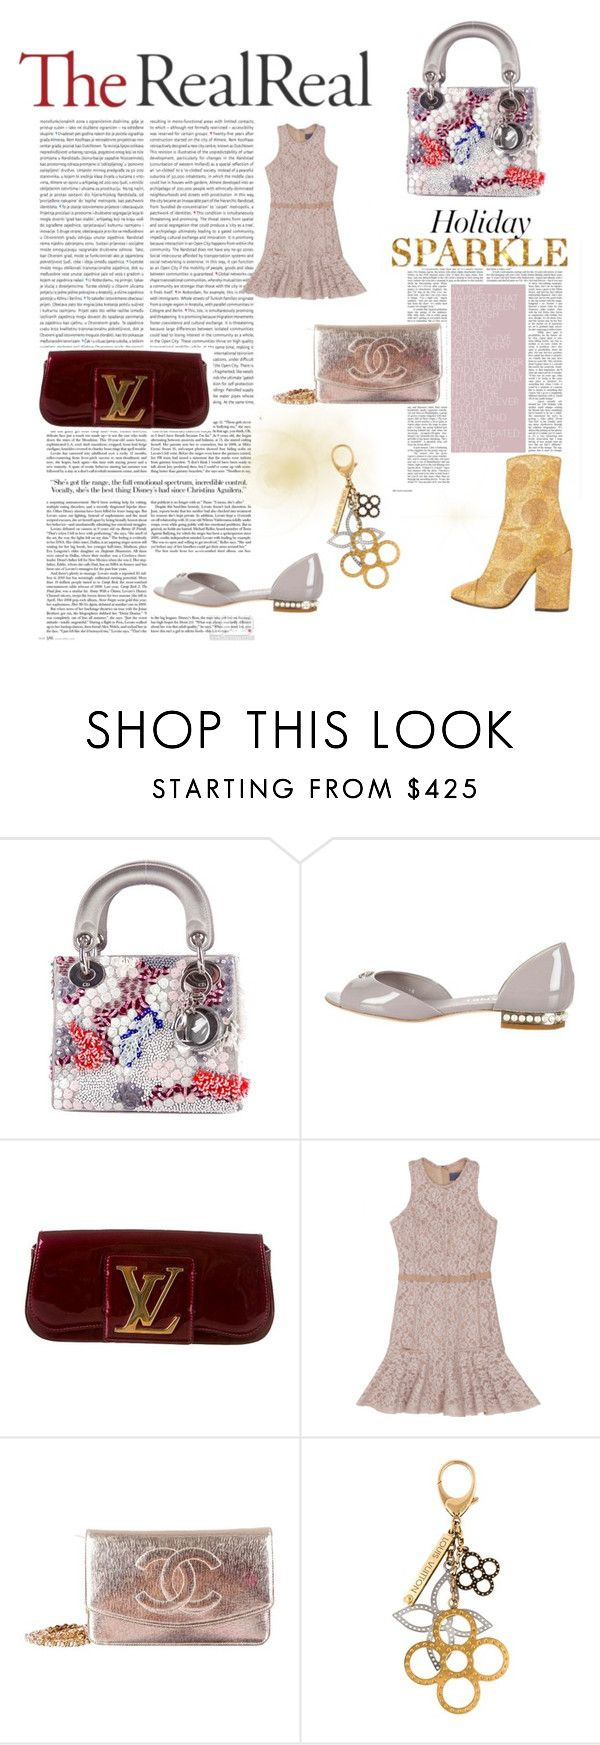 """Holiday Sparkle With The RealReal: Contest Entry"" by zerinafe on Polyvore featuring Christian Dior, Chanel, Oris, Louis Vuitton, Lanvin and Dries Van Noten"